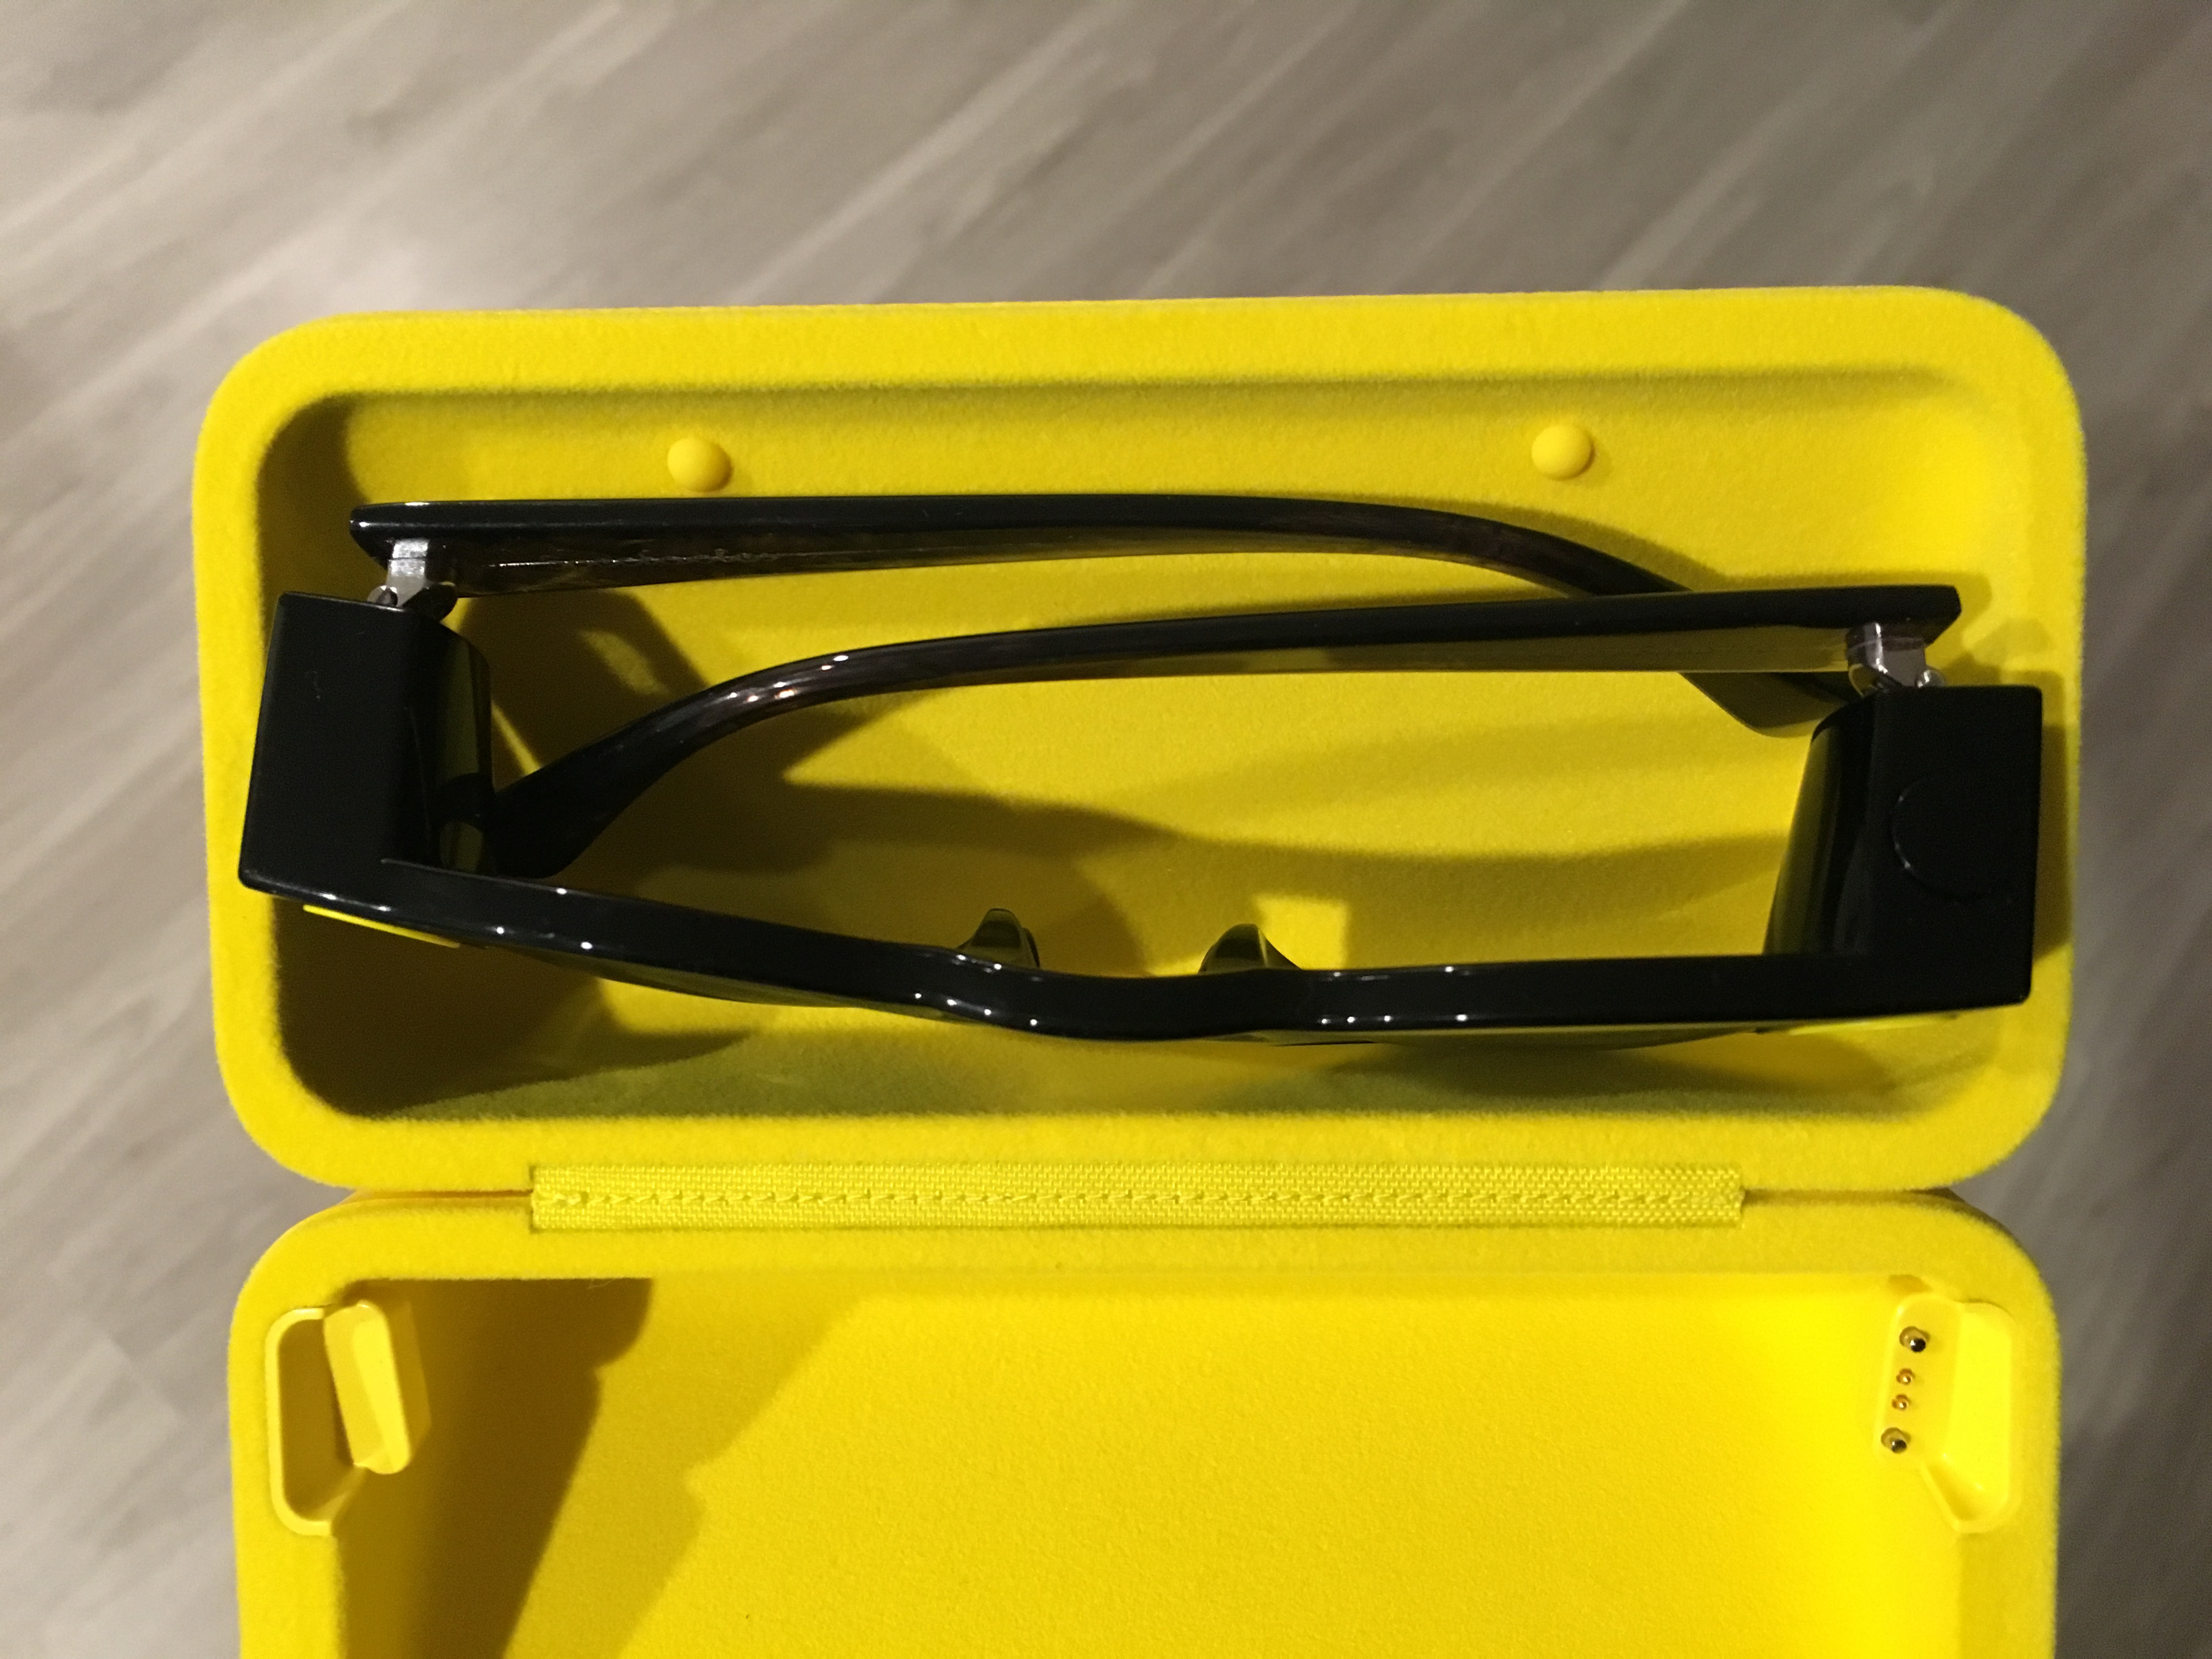 9a957cb591 Review  Snapchat Spectacles — early impressions of the social ...